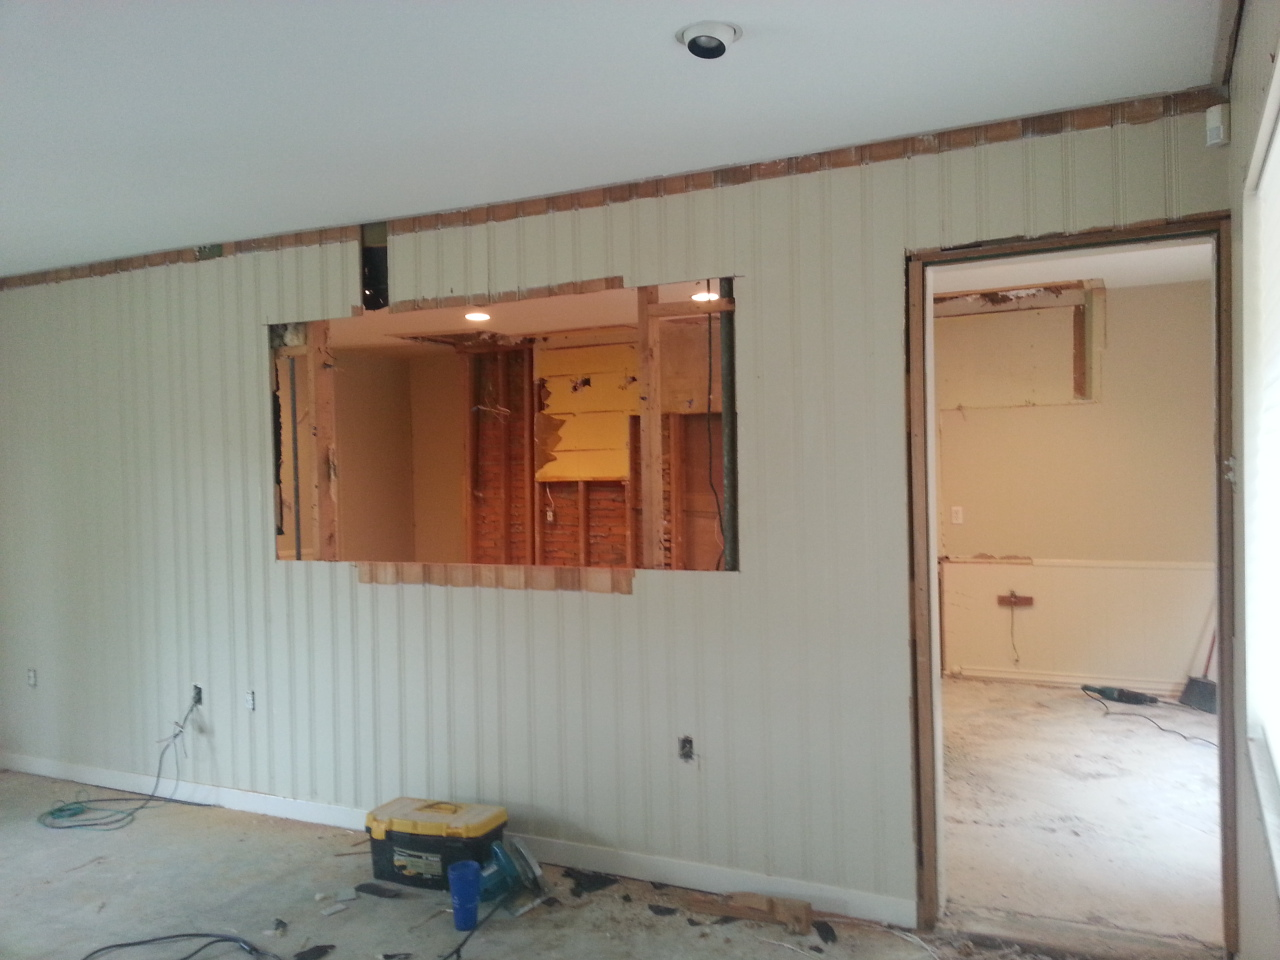 DURING. In widening the kitchen peek through we realized that there is NO drywall behind that paneling. You can see the backside of the fireplace next to the original pantry also.